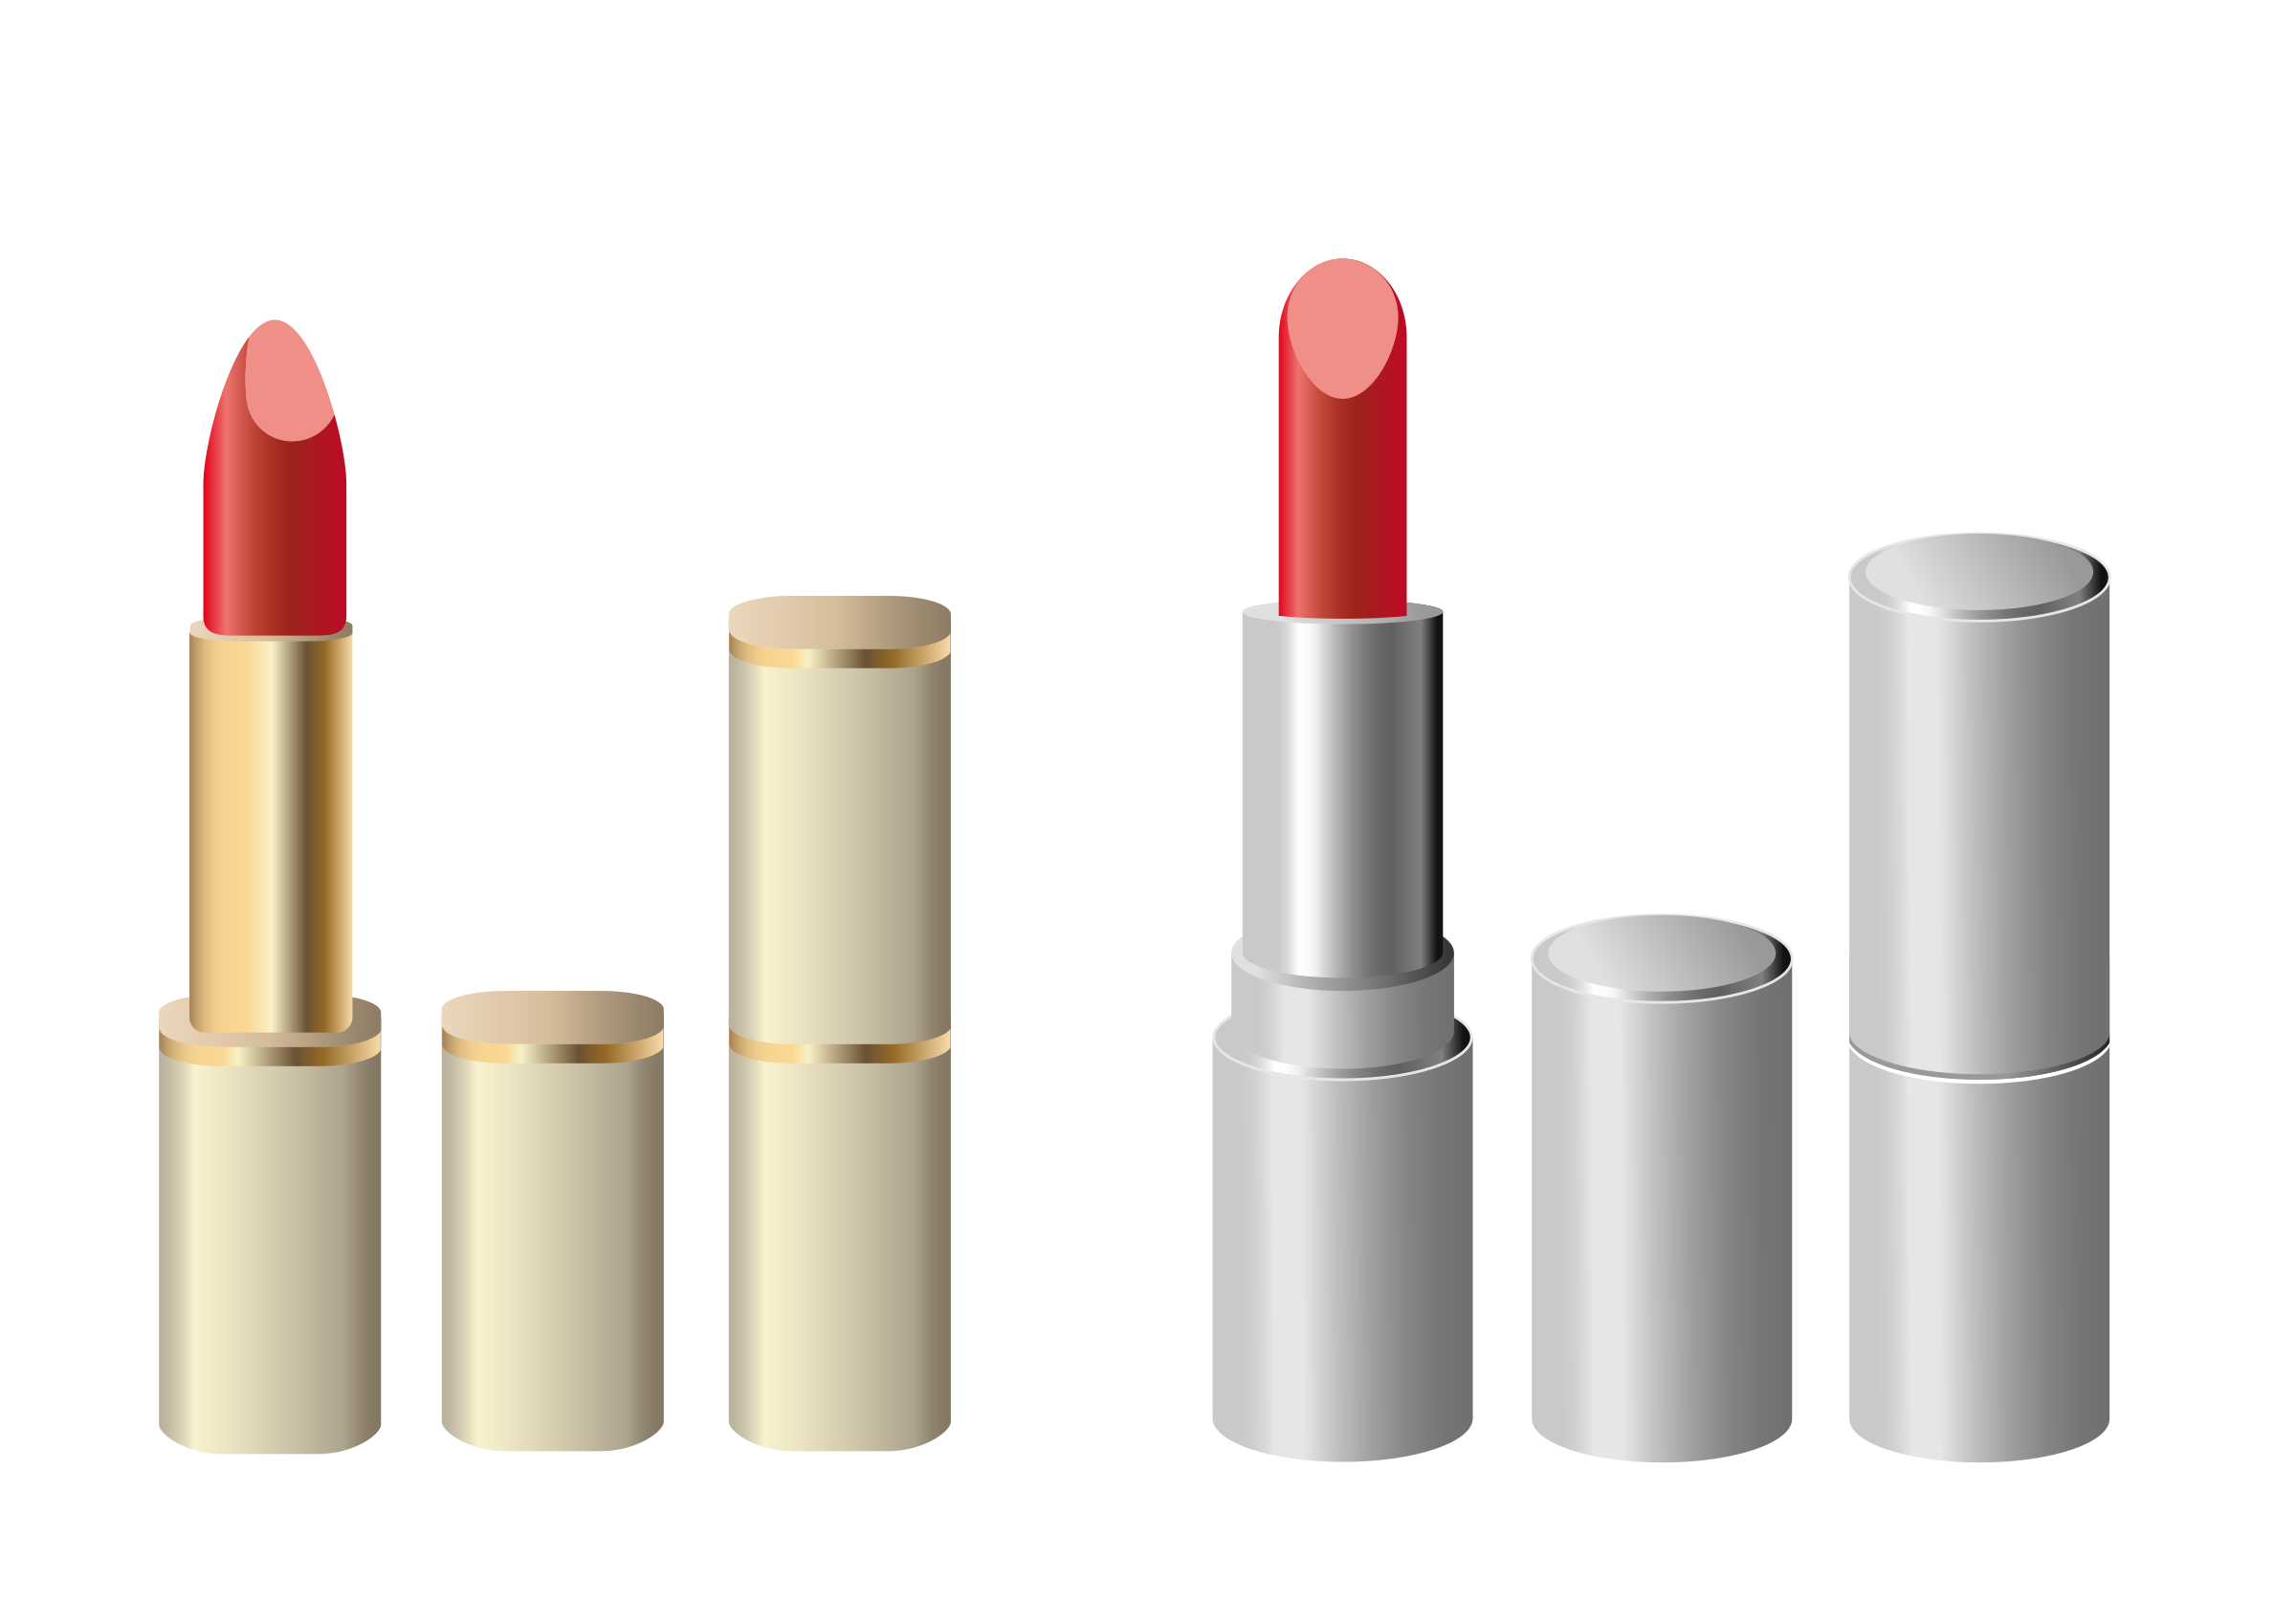 Now you can download Lipstick PNG